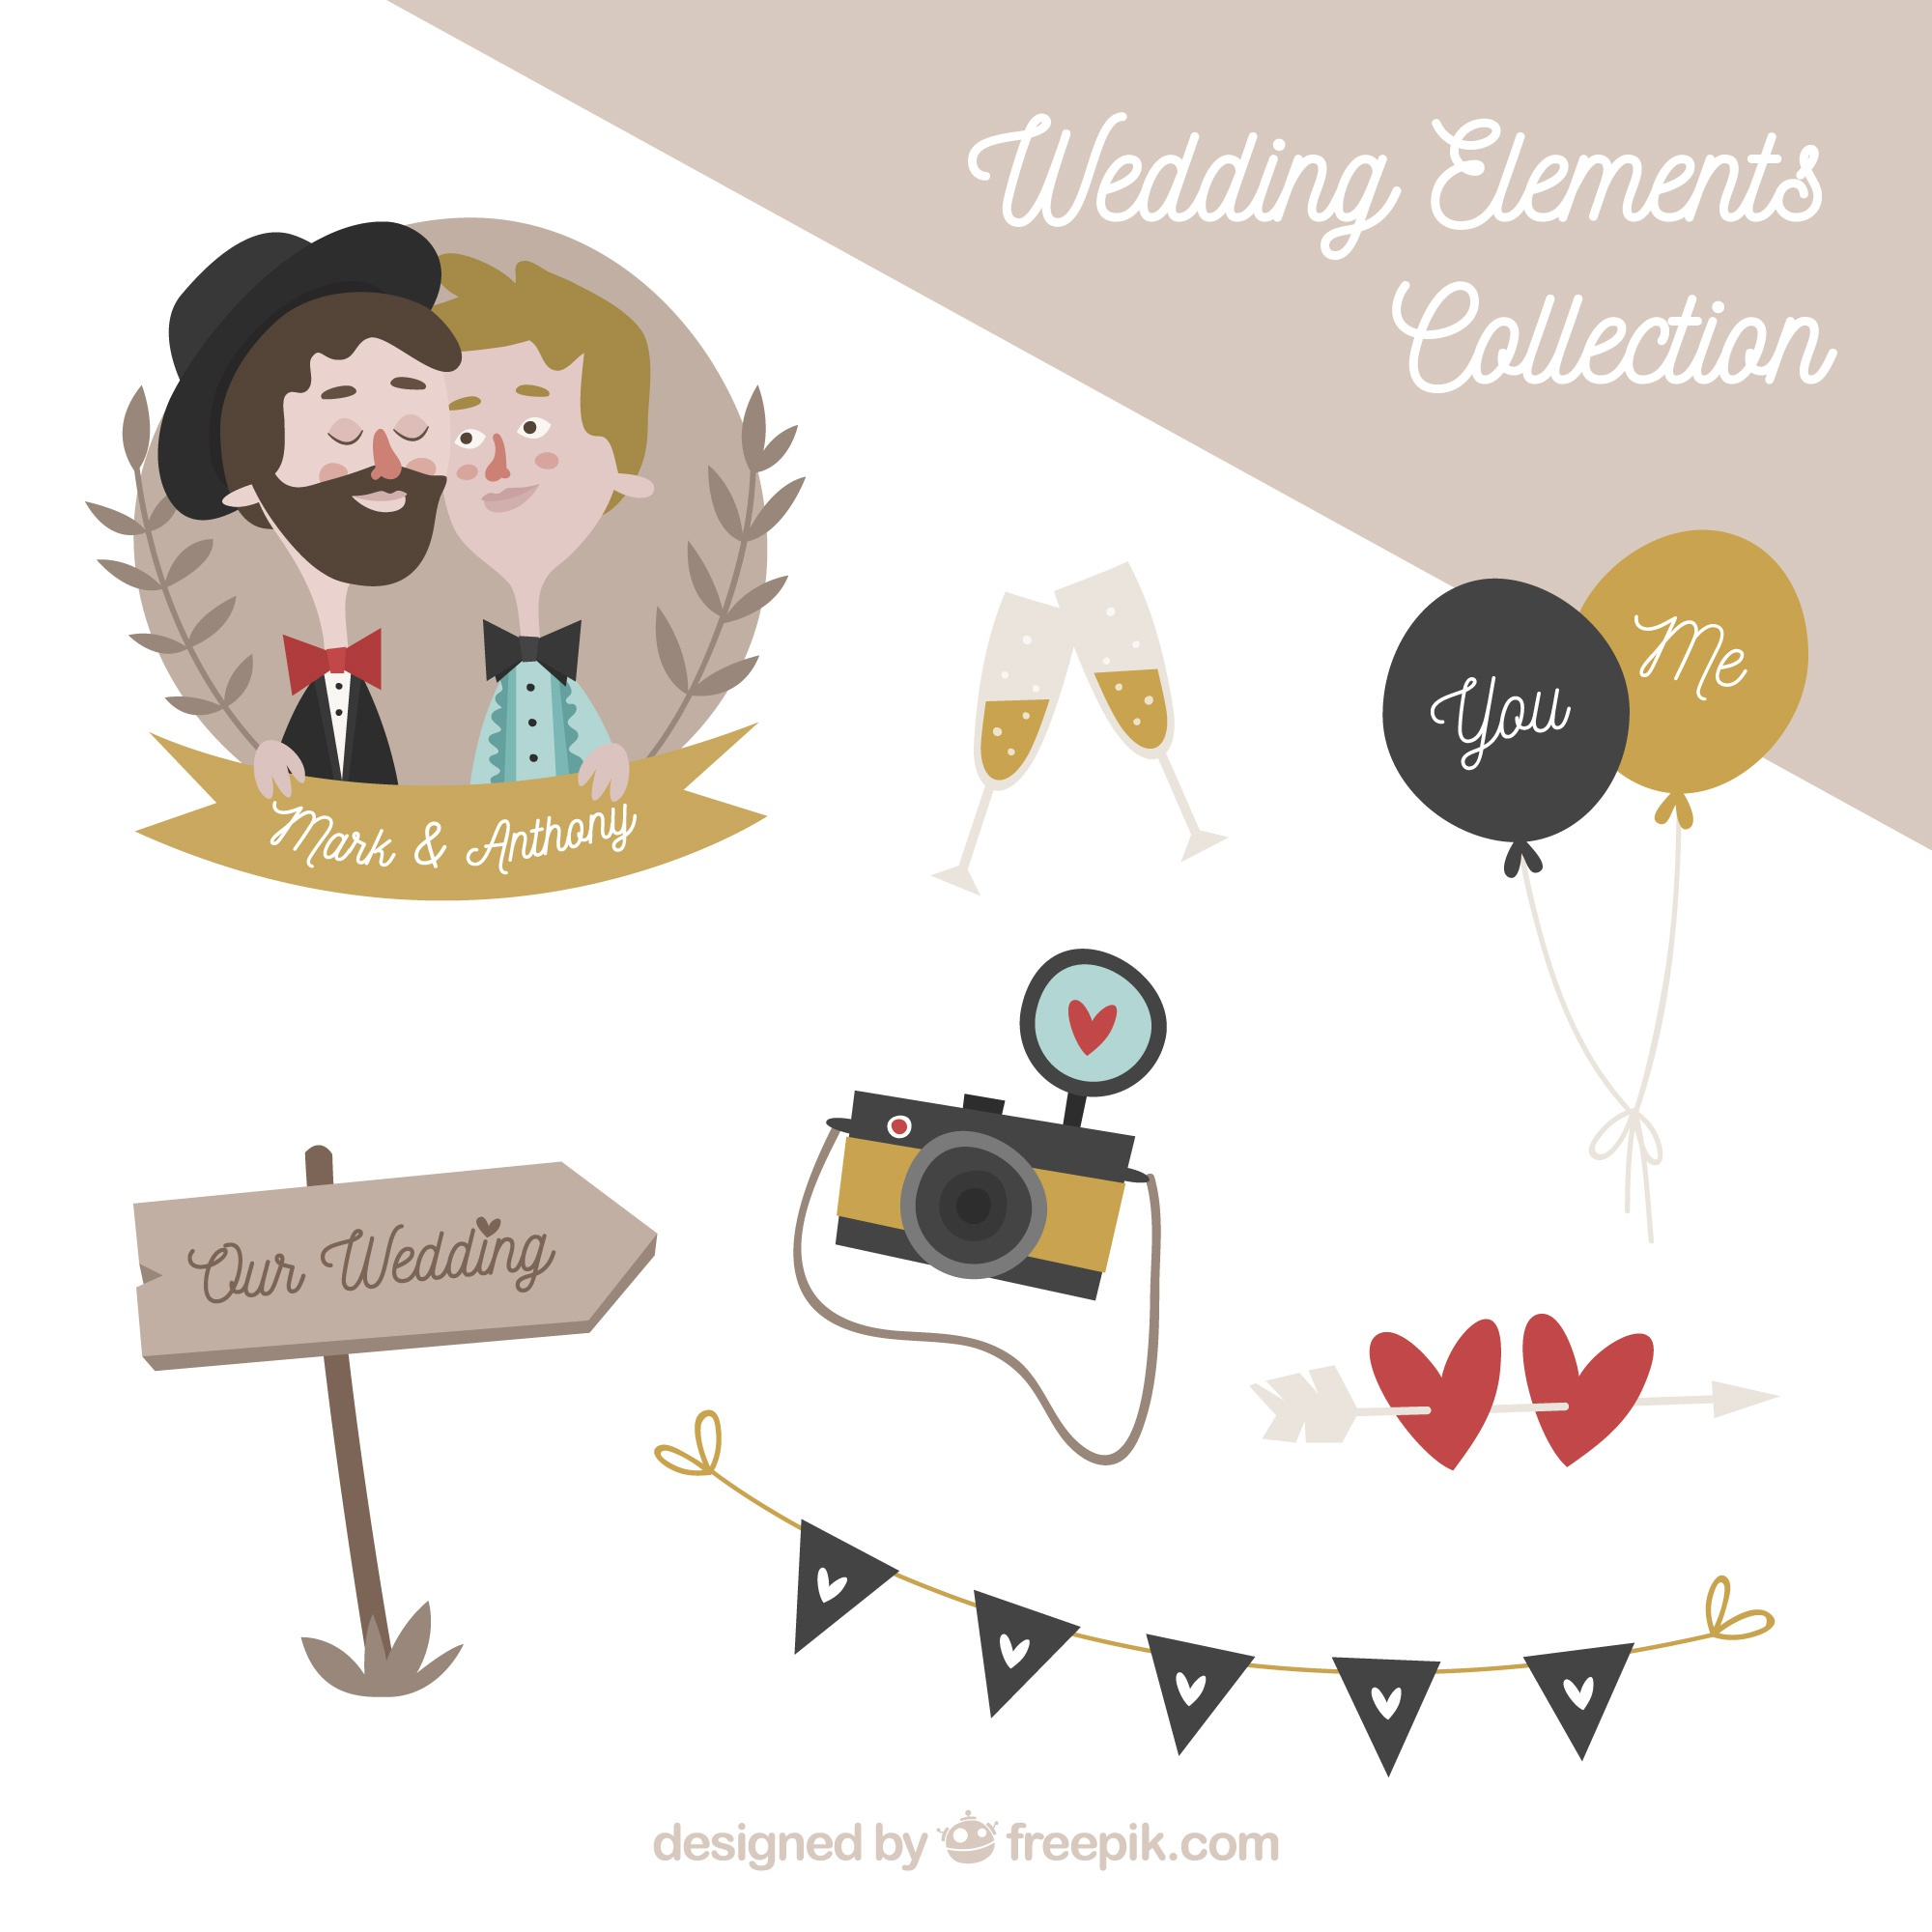 Vintage wedding elements with cute couple